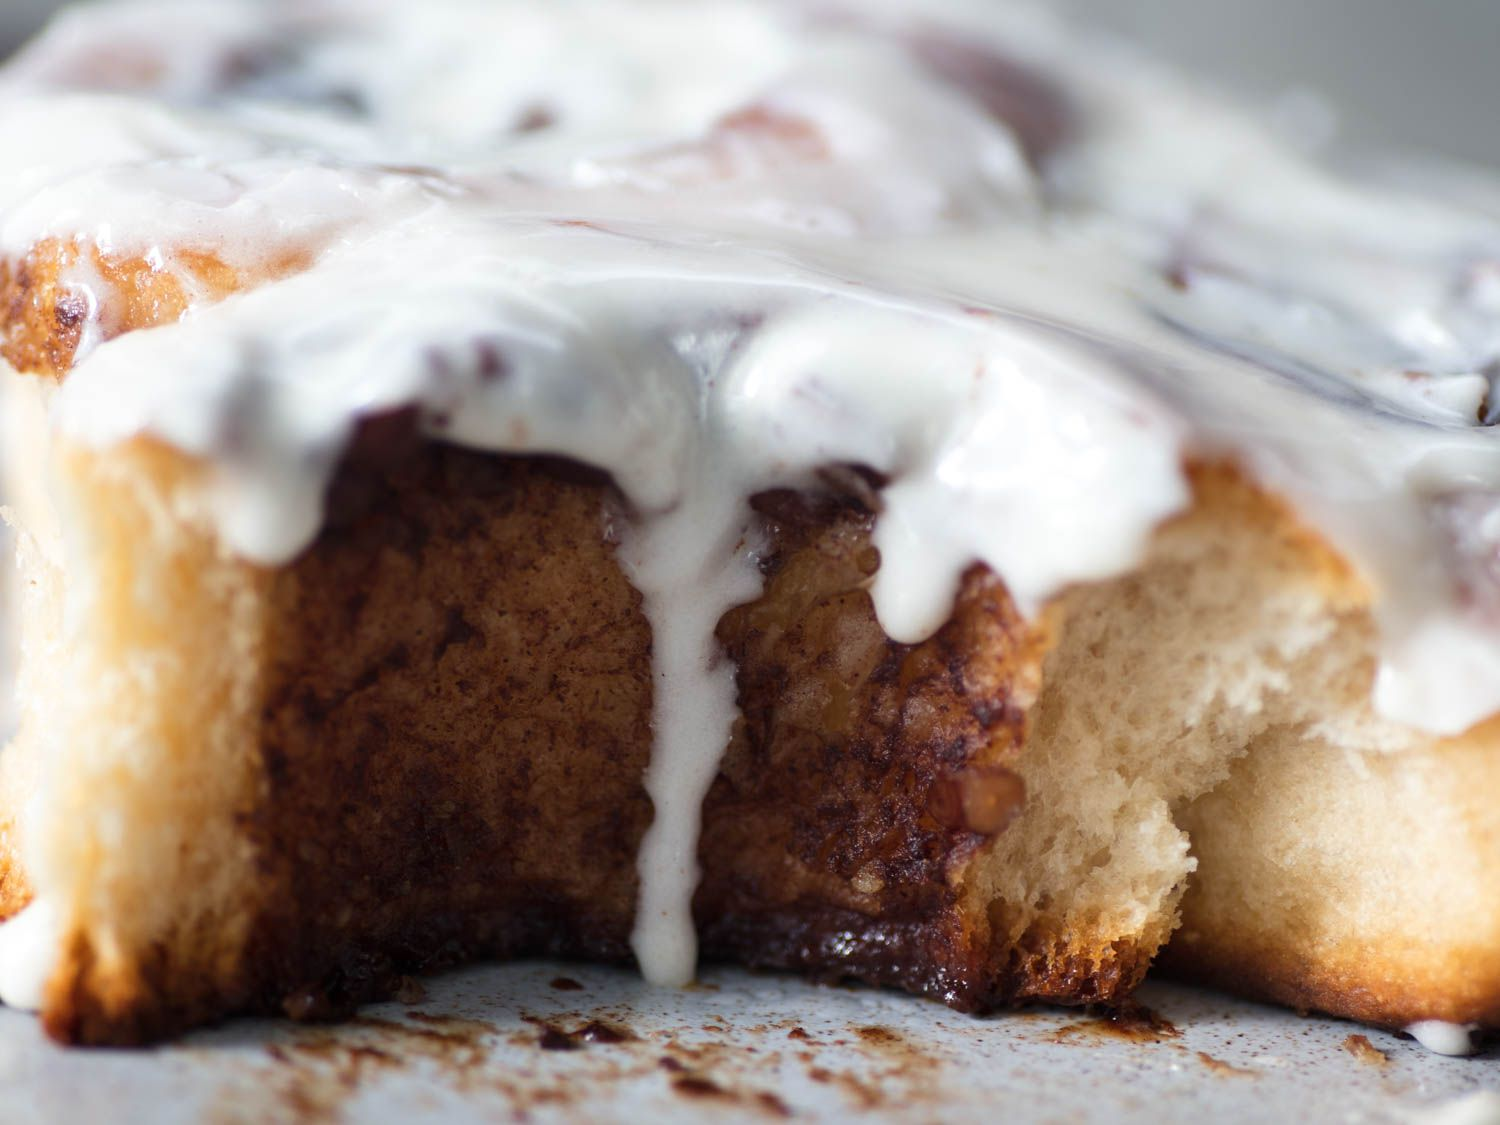 Close-up photograph of a cinnamon roll with cream cheese icing dripping down.